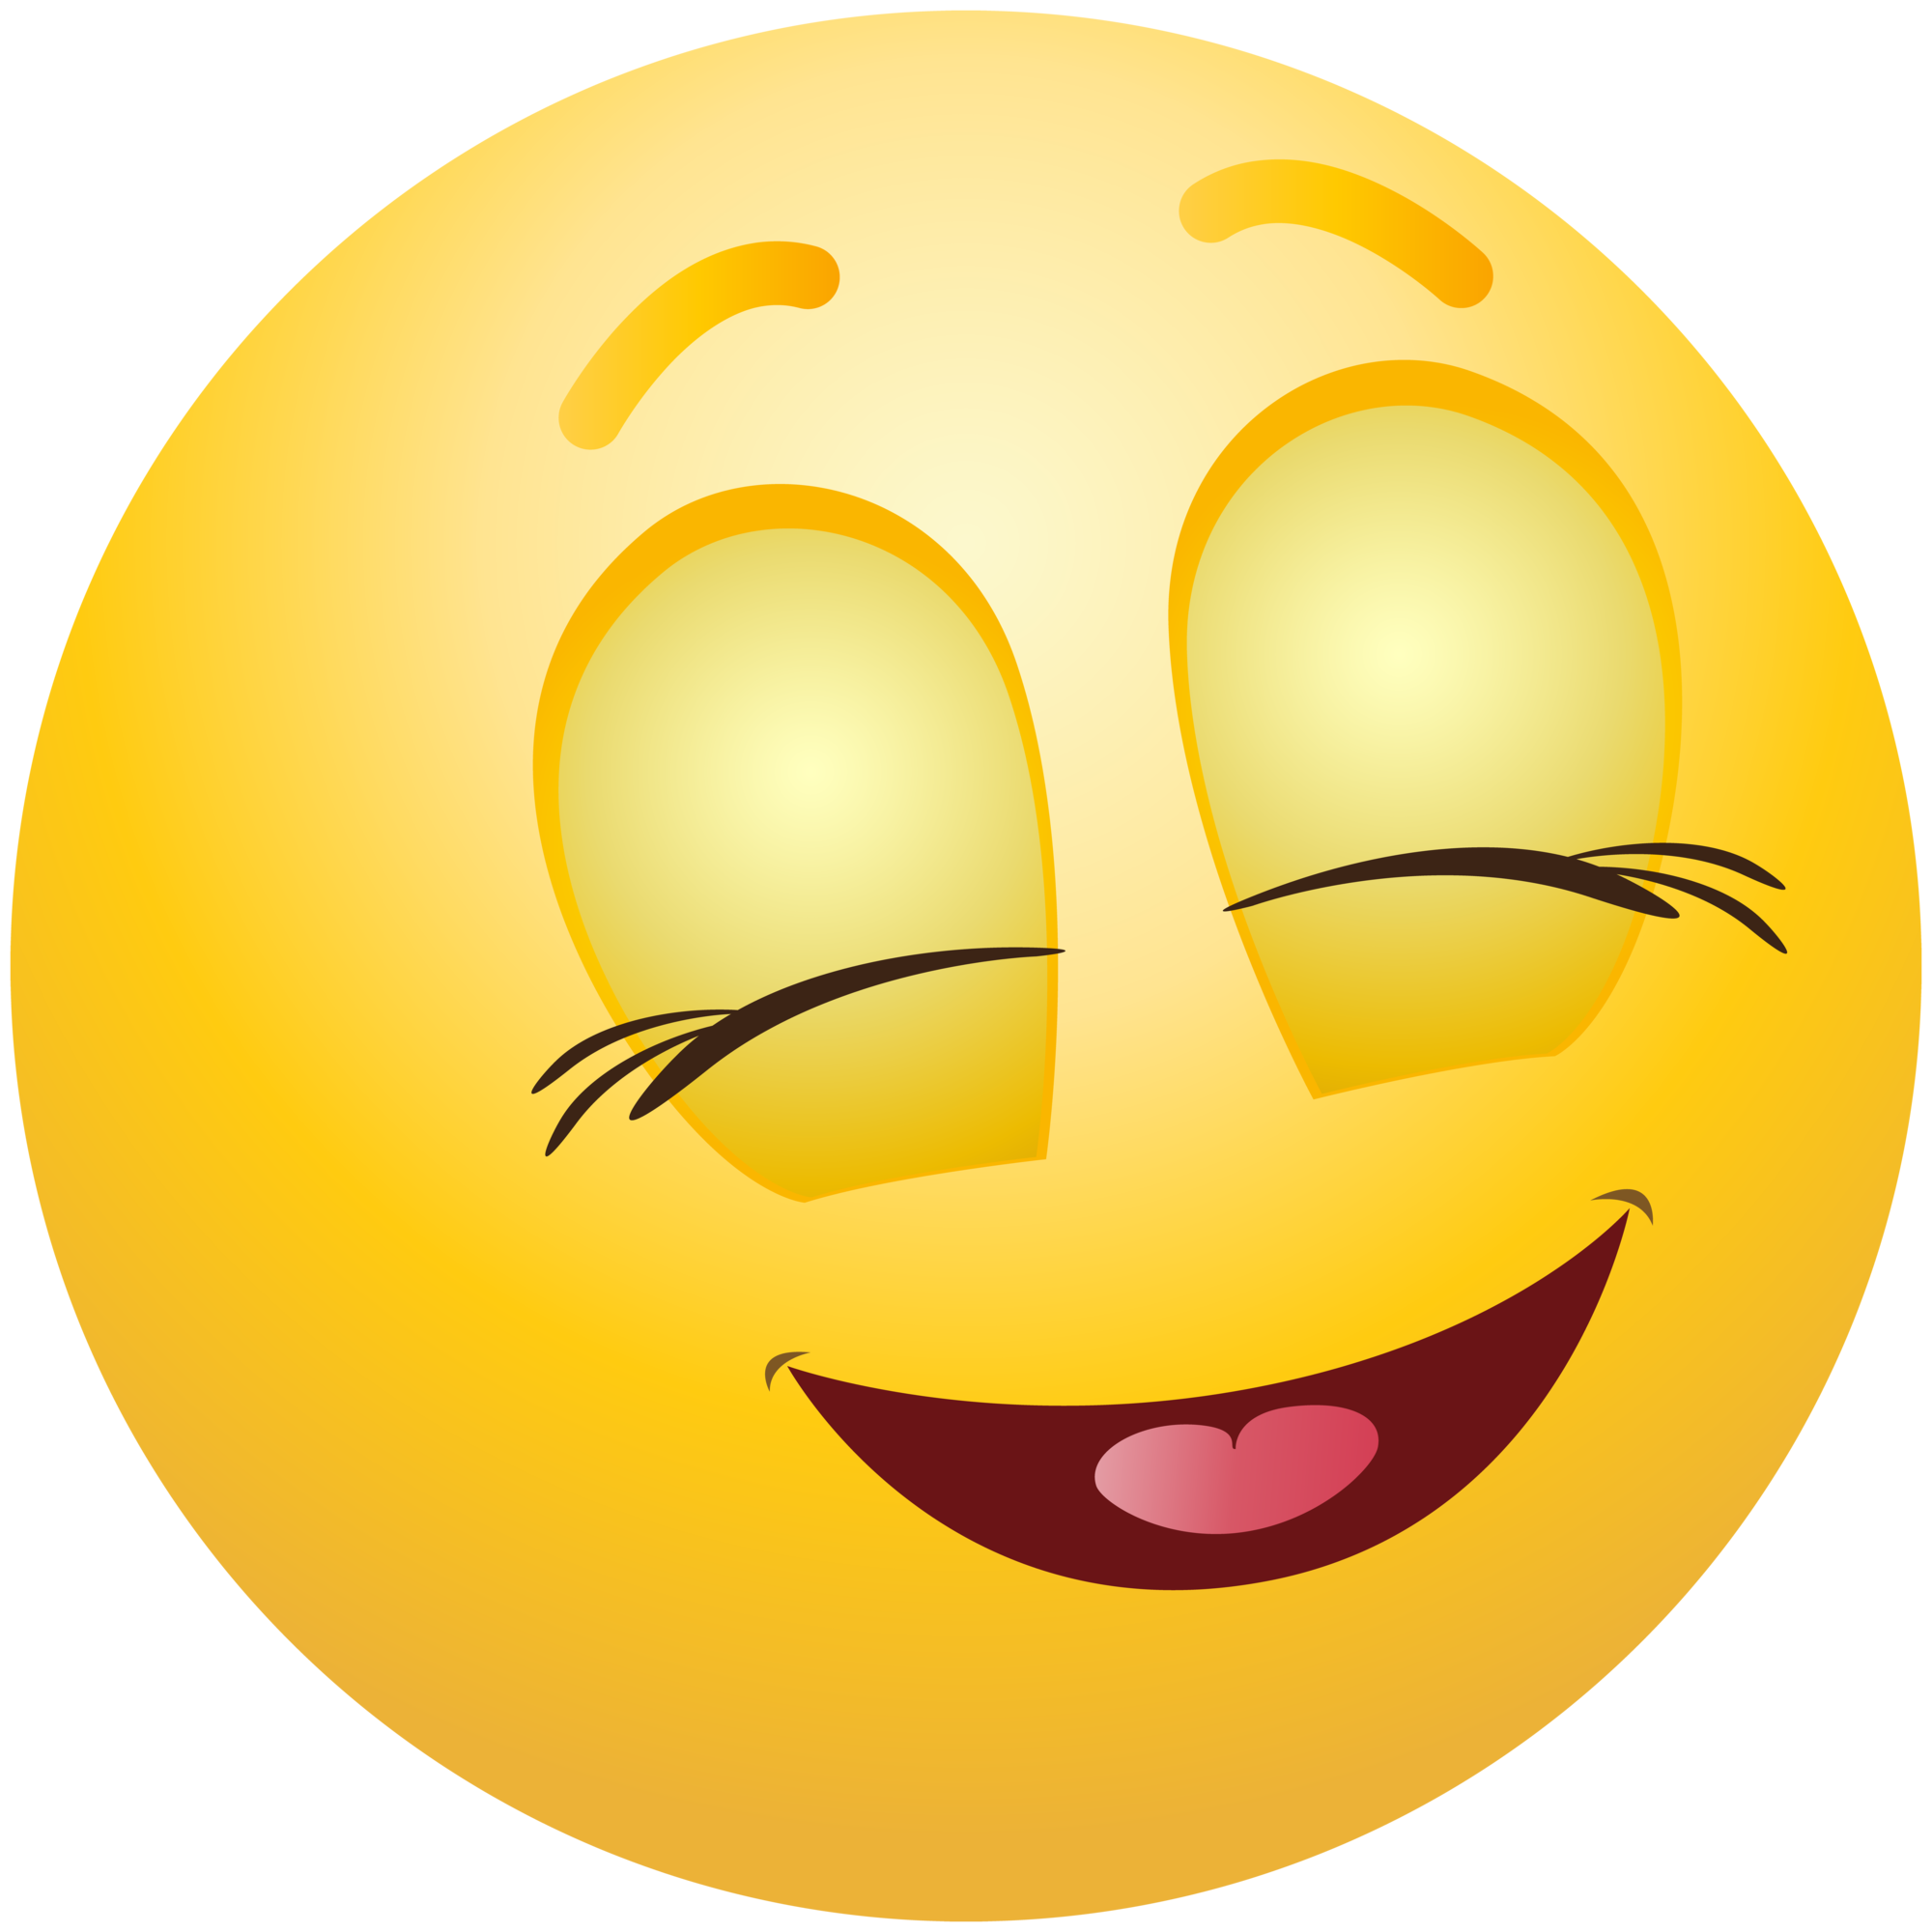 Emoji clipart. Pleased emoticon info